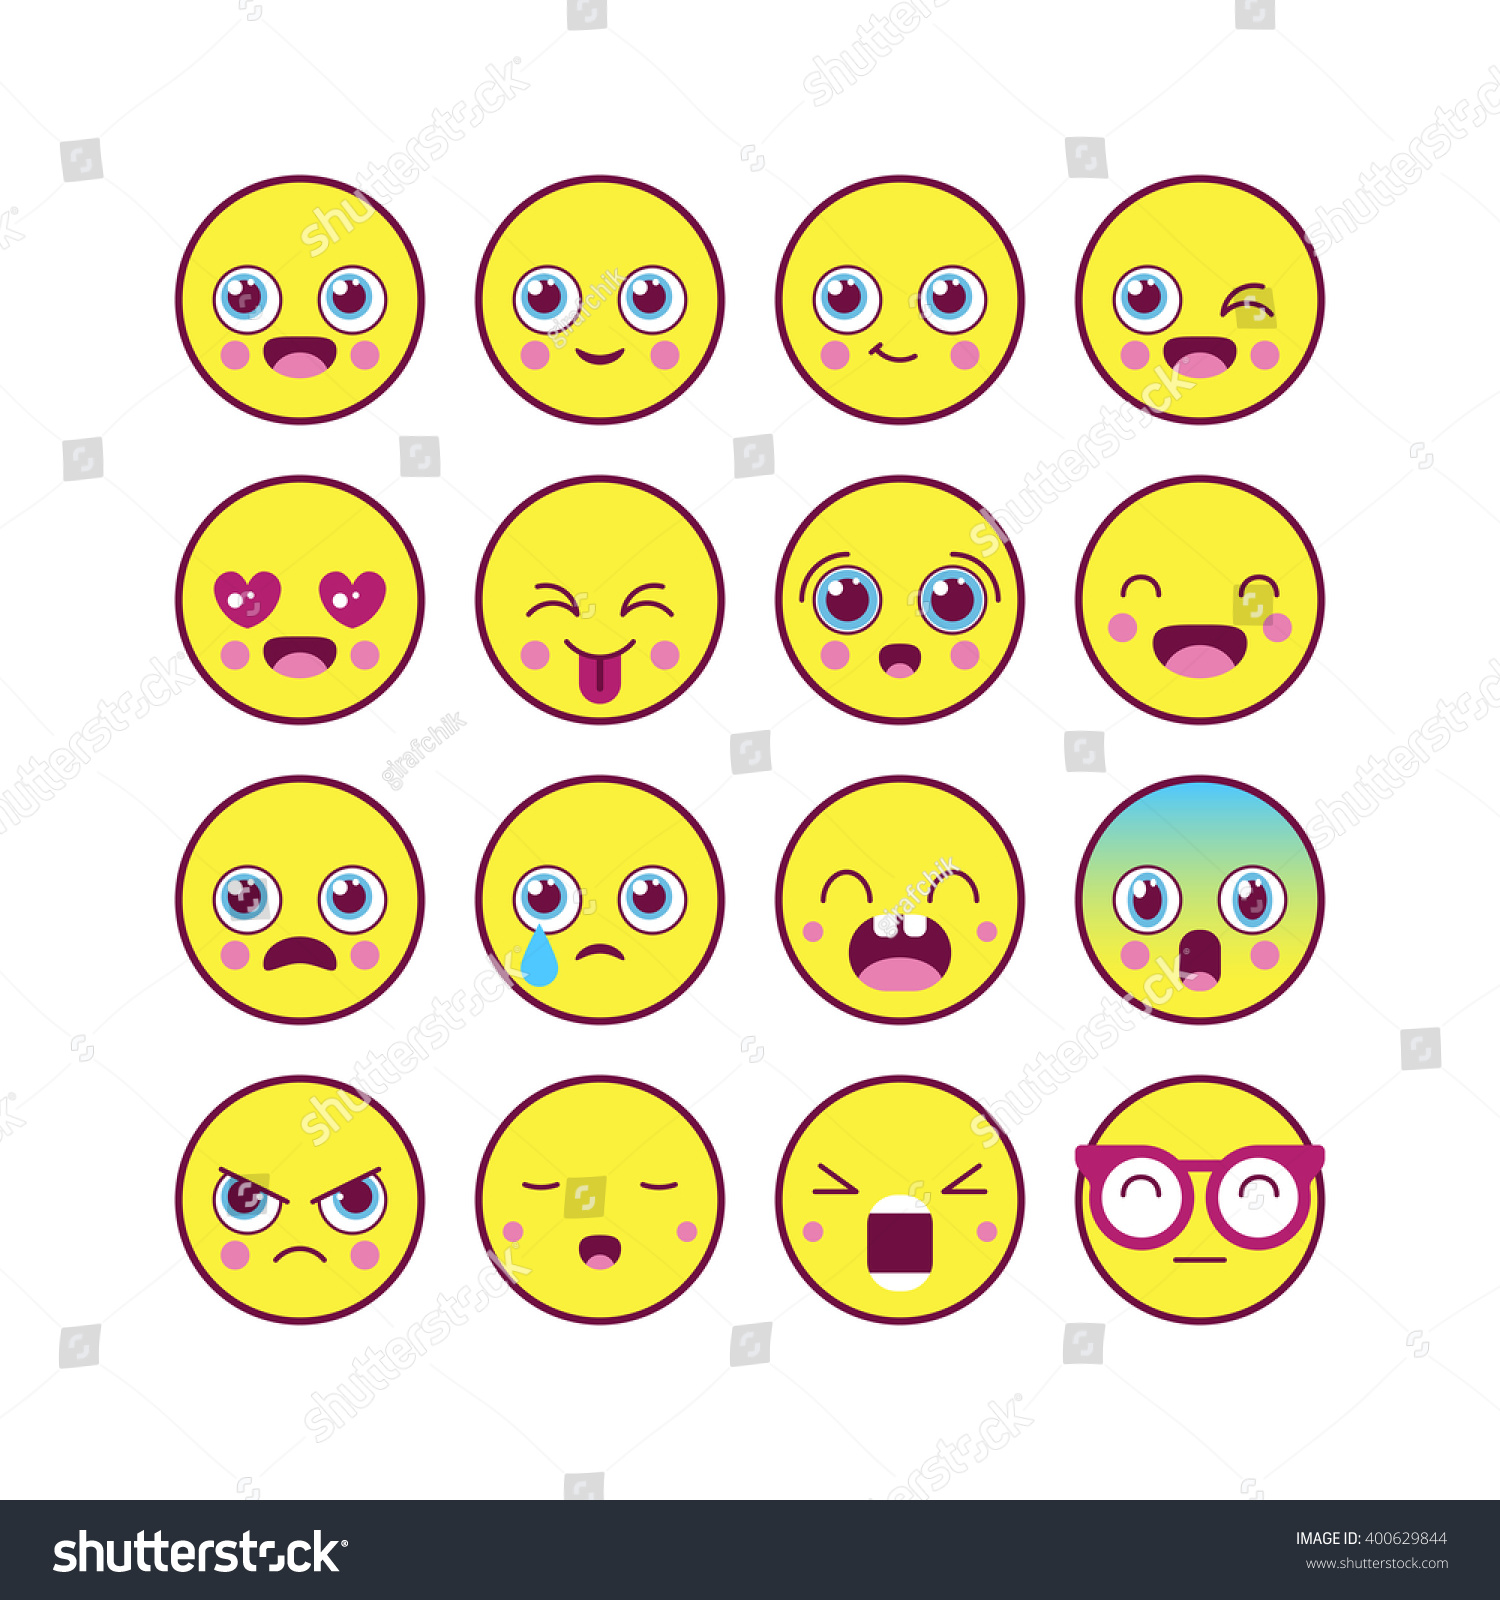 emoticons emoji linear icon set kawaii cute emoticons isolated vector illustration